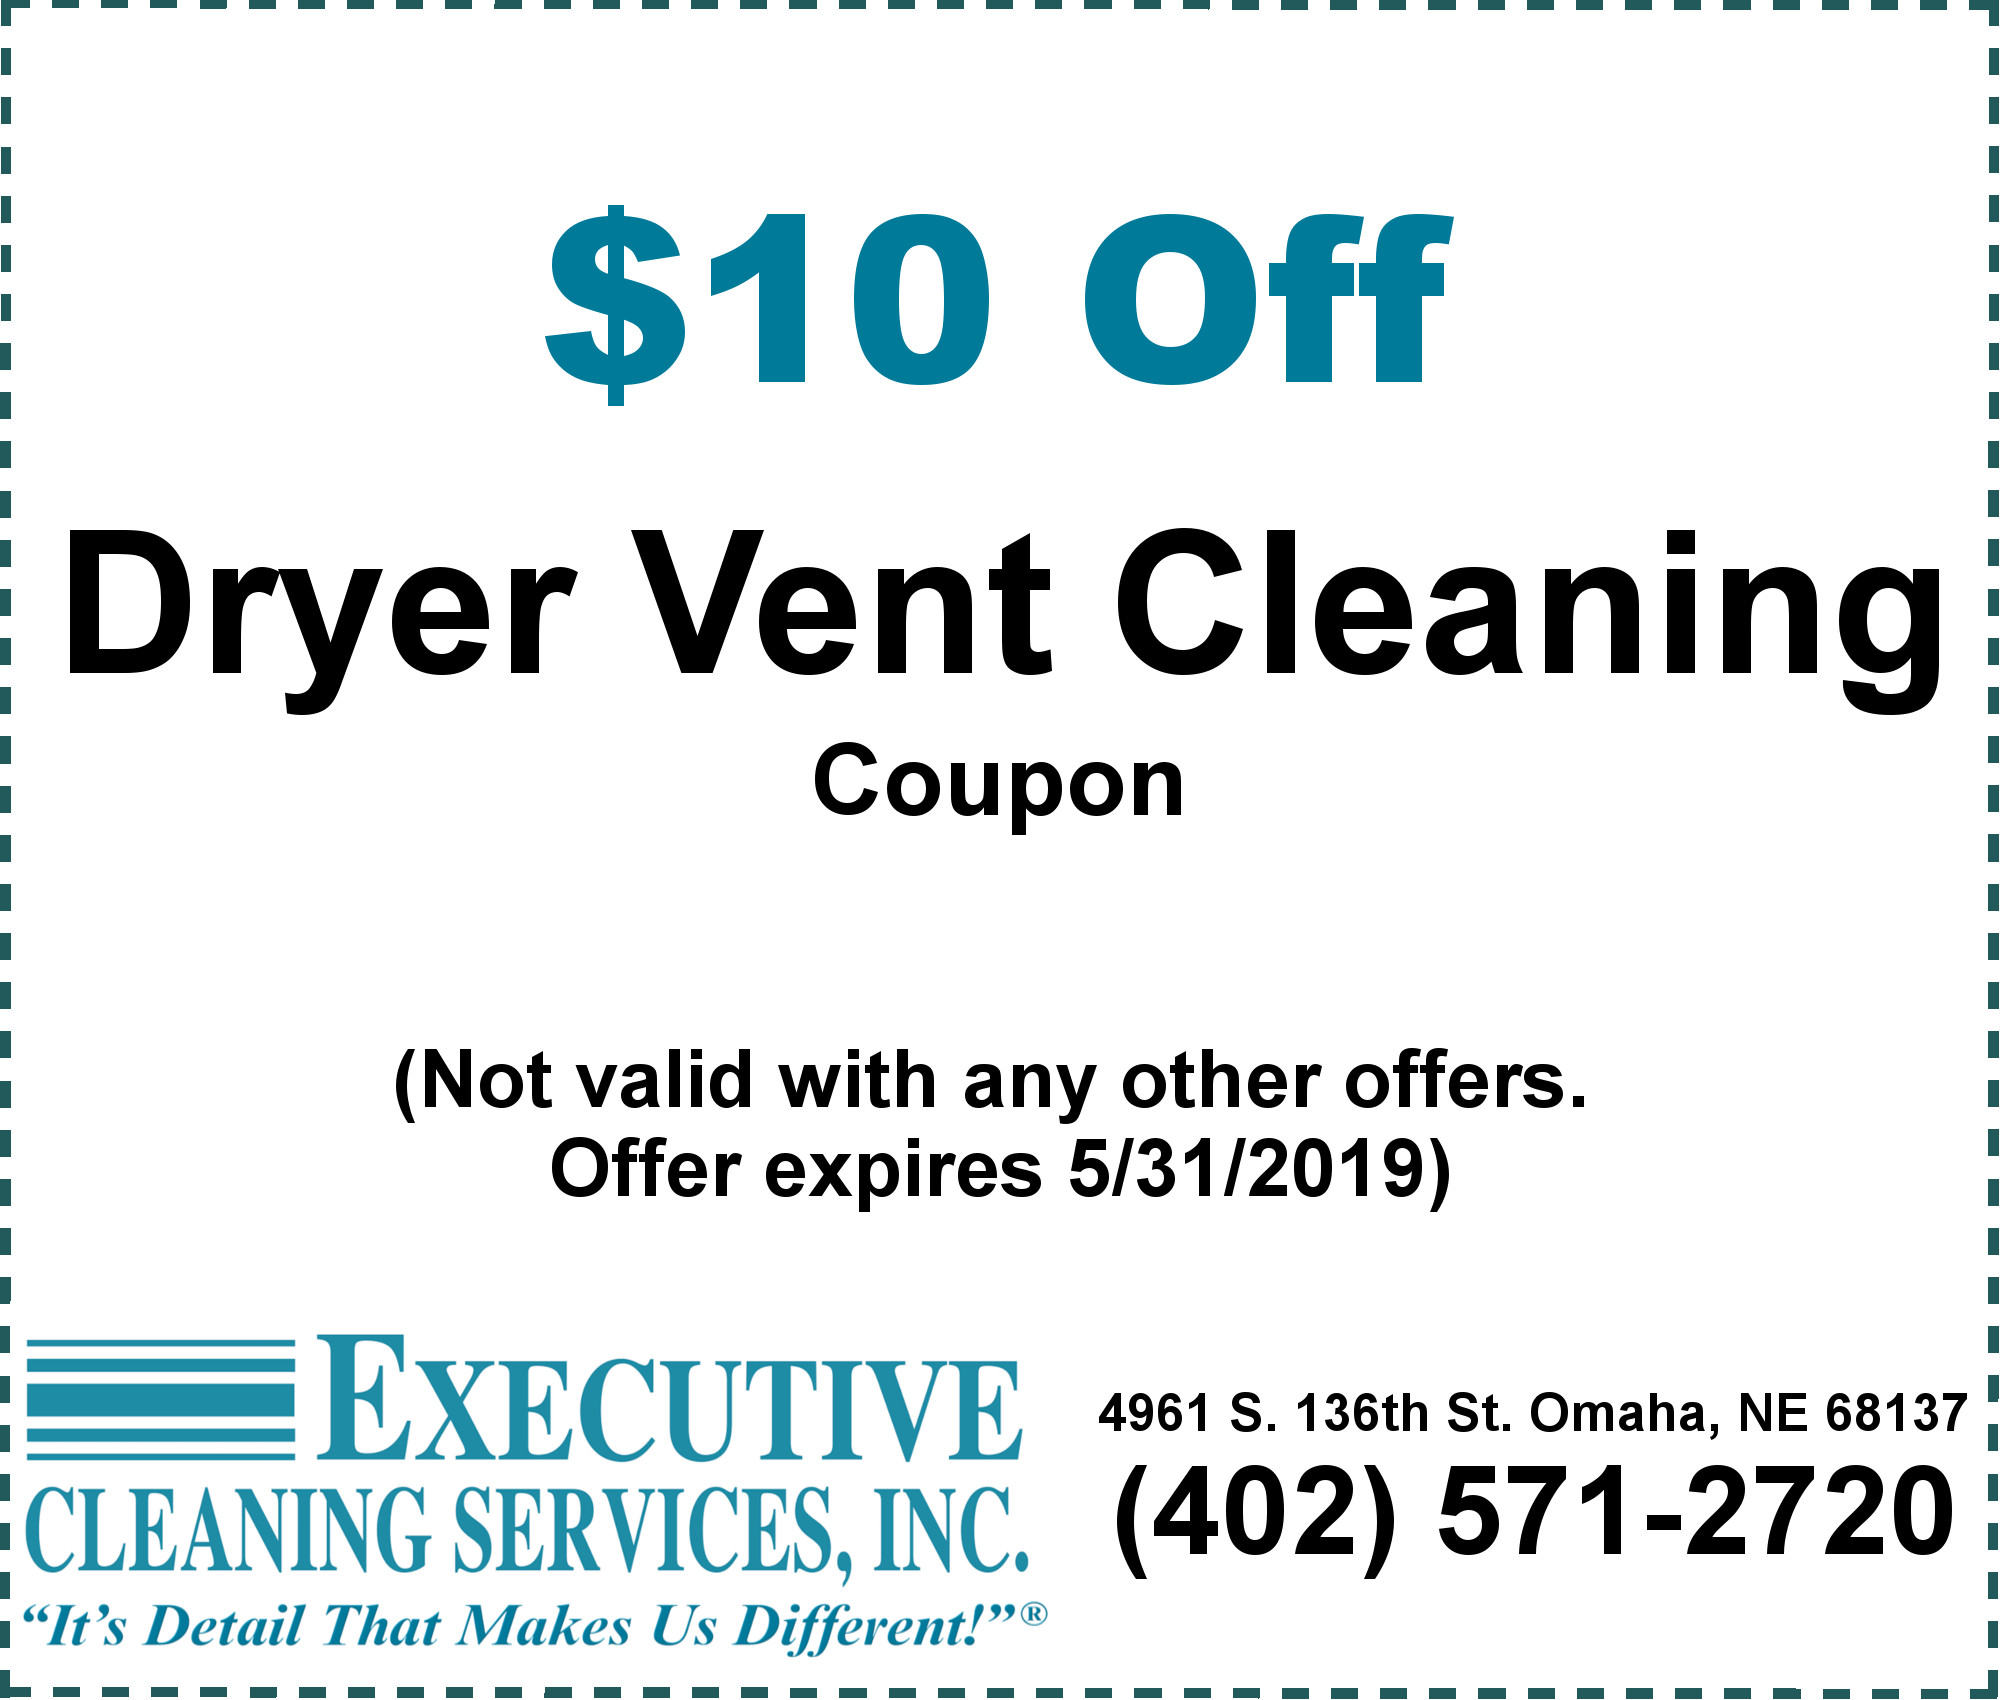 Specials Executive Cleaning Services Inc Omaha Ne